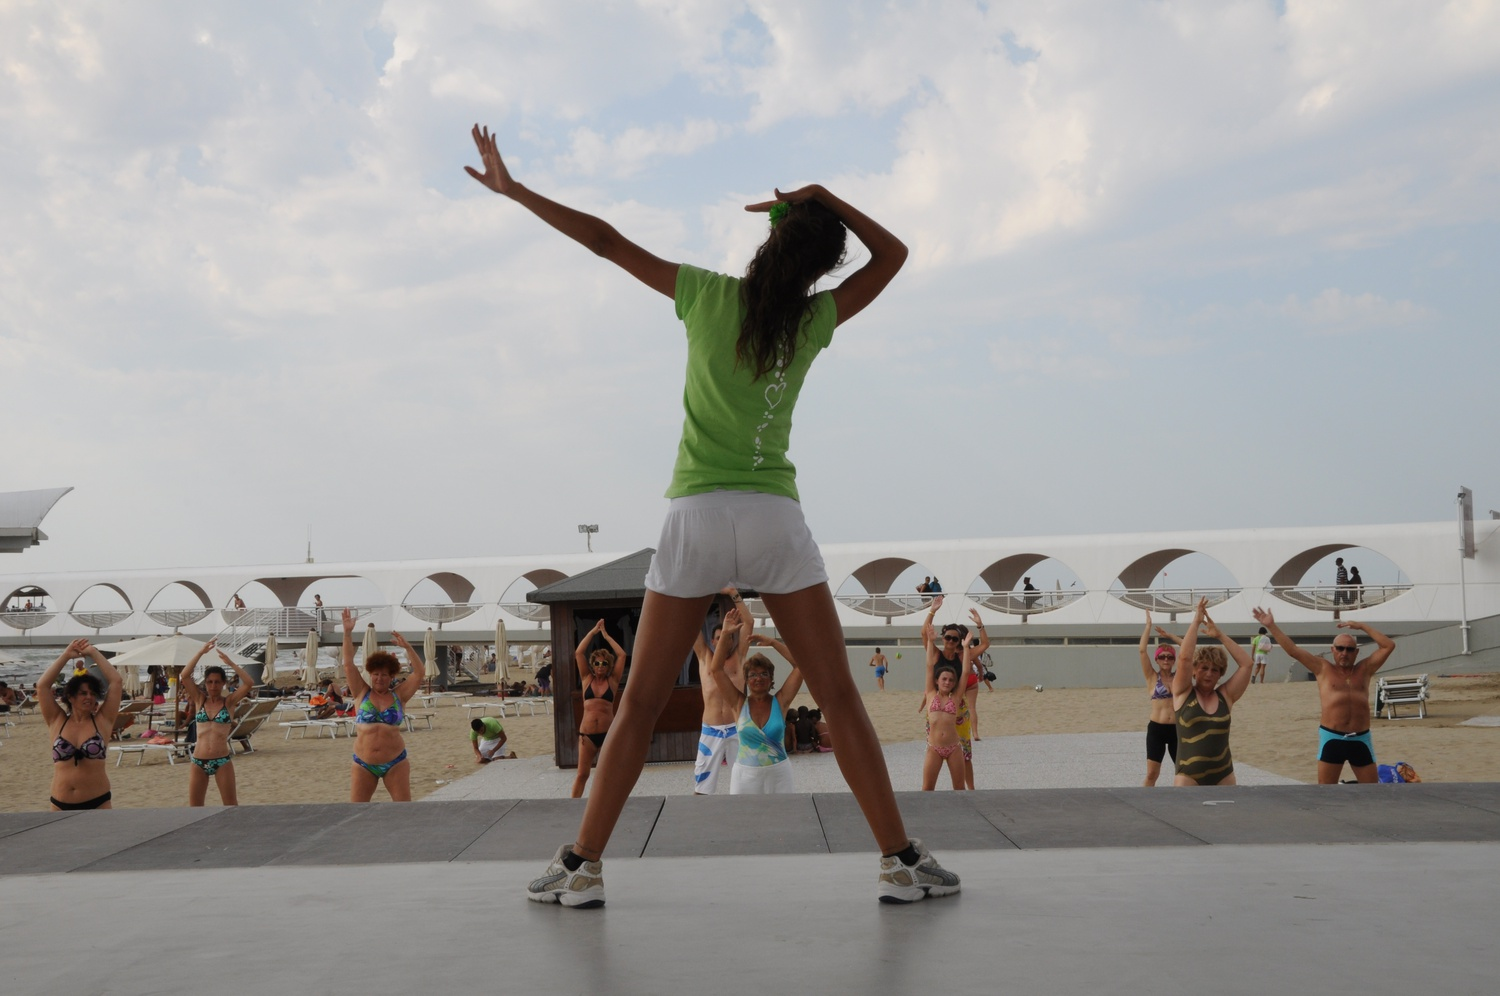 Muscle toning at Beach Village in Lignano